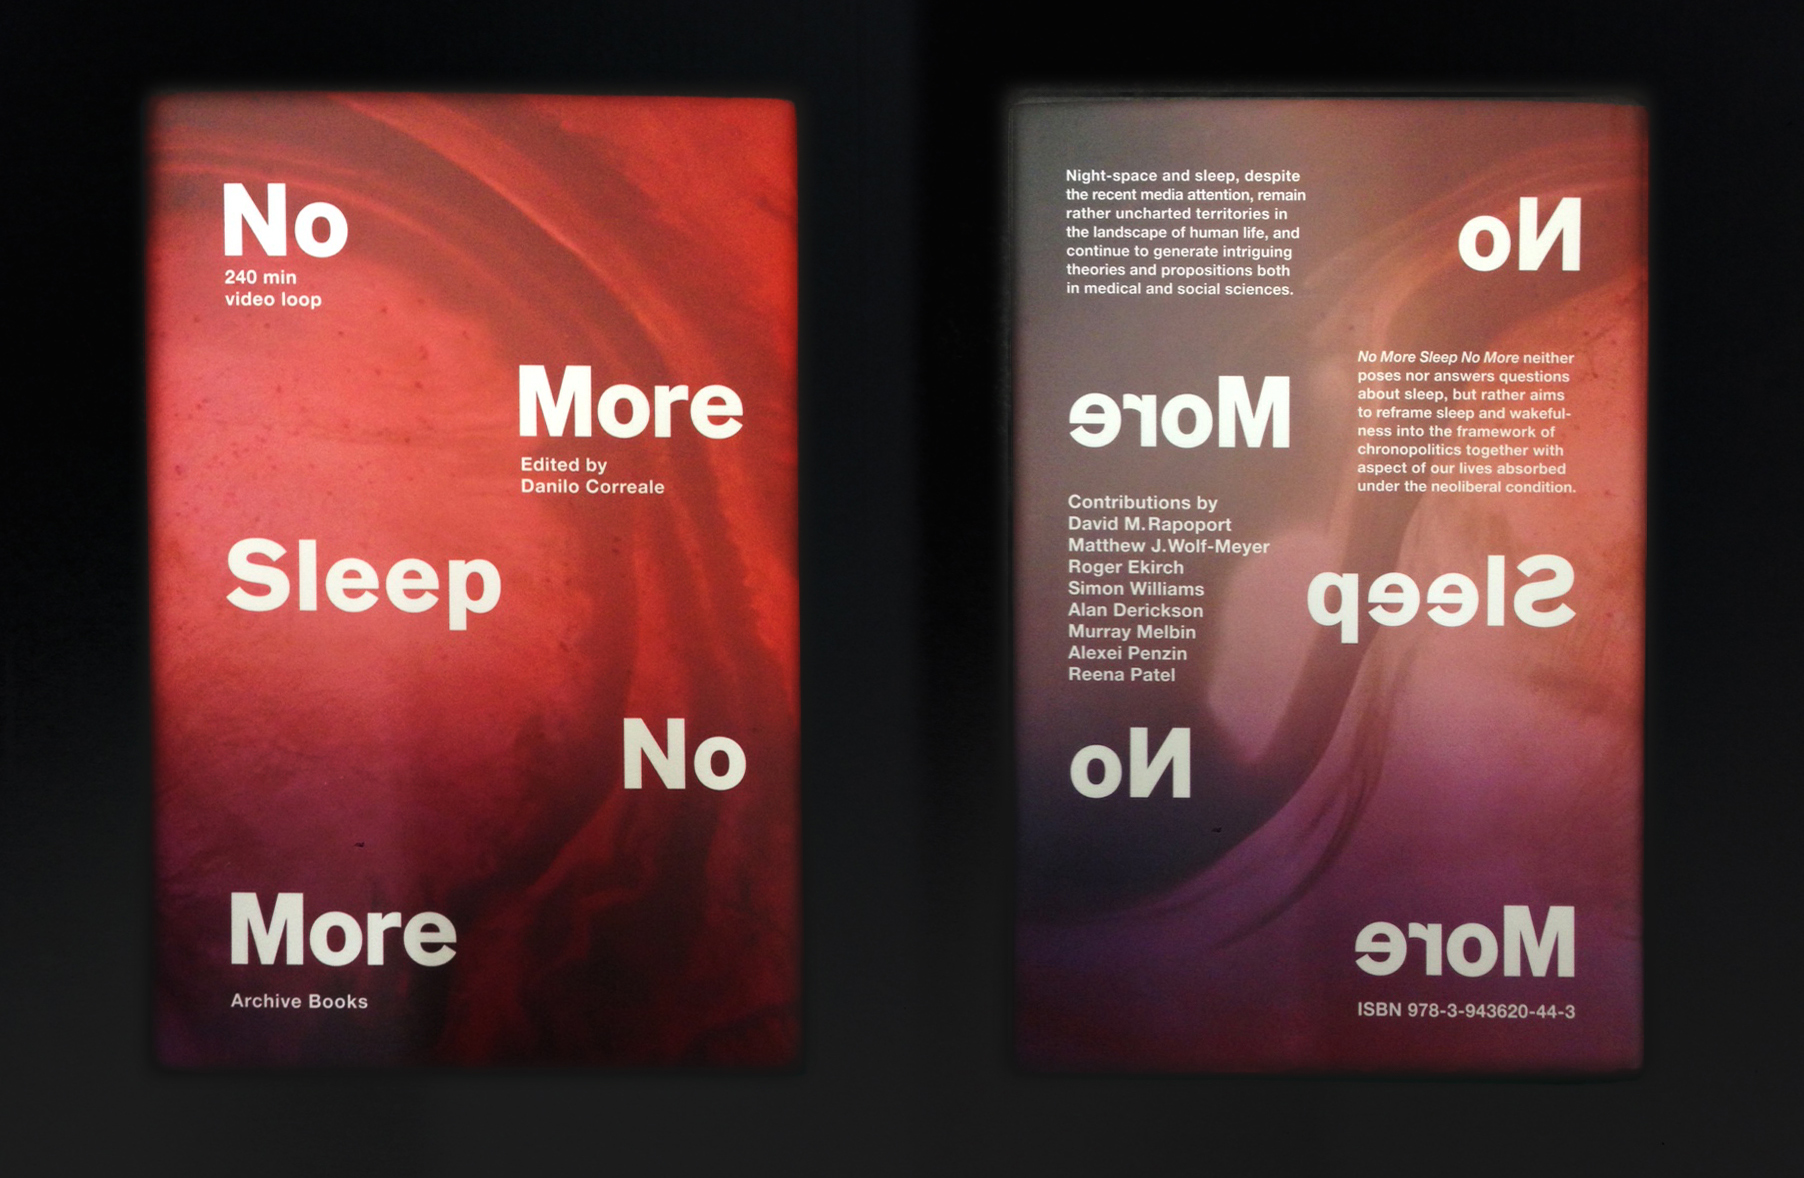 No More Sleep No More,   With contribution from, David M. Rapoport, Matthew J. Wolf-Meyer, Roger Ekirch,Simon Williams, Alan Derickson,Murray Melbin, Alexei Penzin,Reena Patel  Graphic design by  Archive Appendix  English, Hardcover,  15.5×23 cm,128 pages,colours  Archive Books 2016   ISBN 978-3-943620-44-3